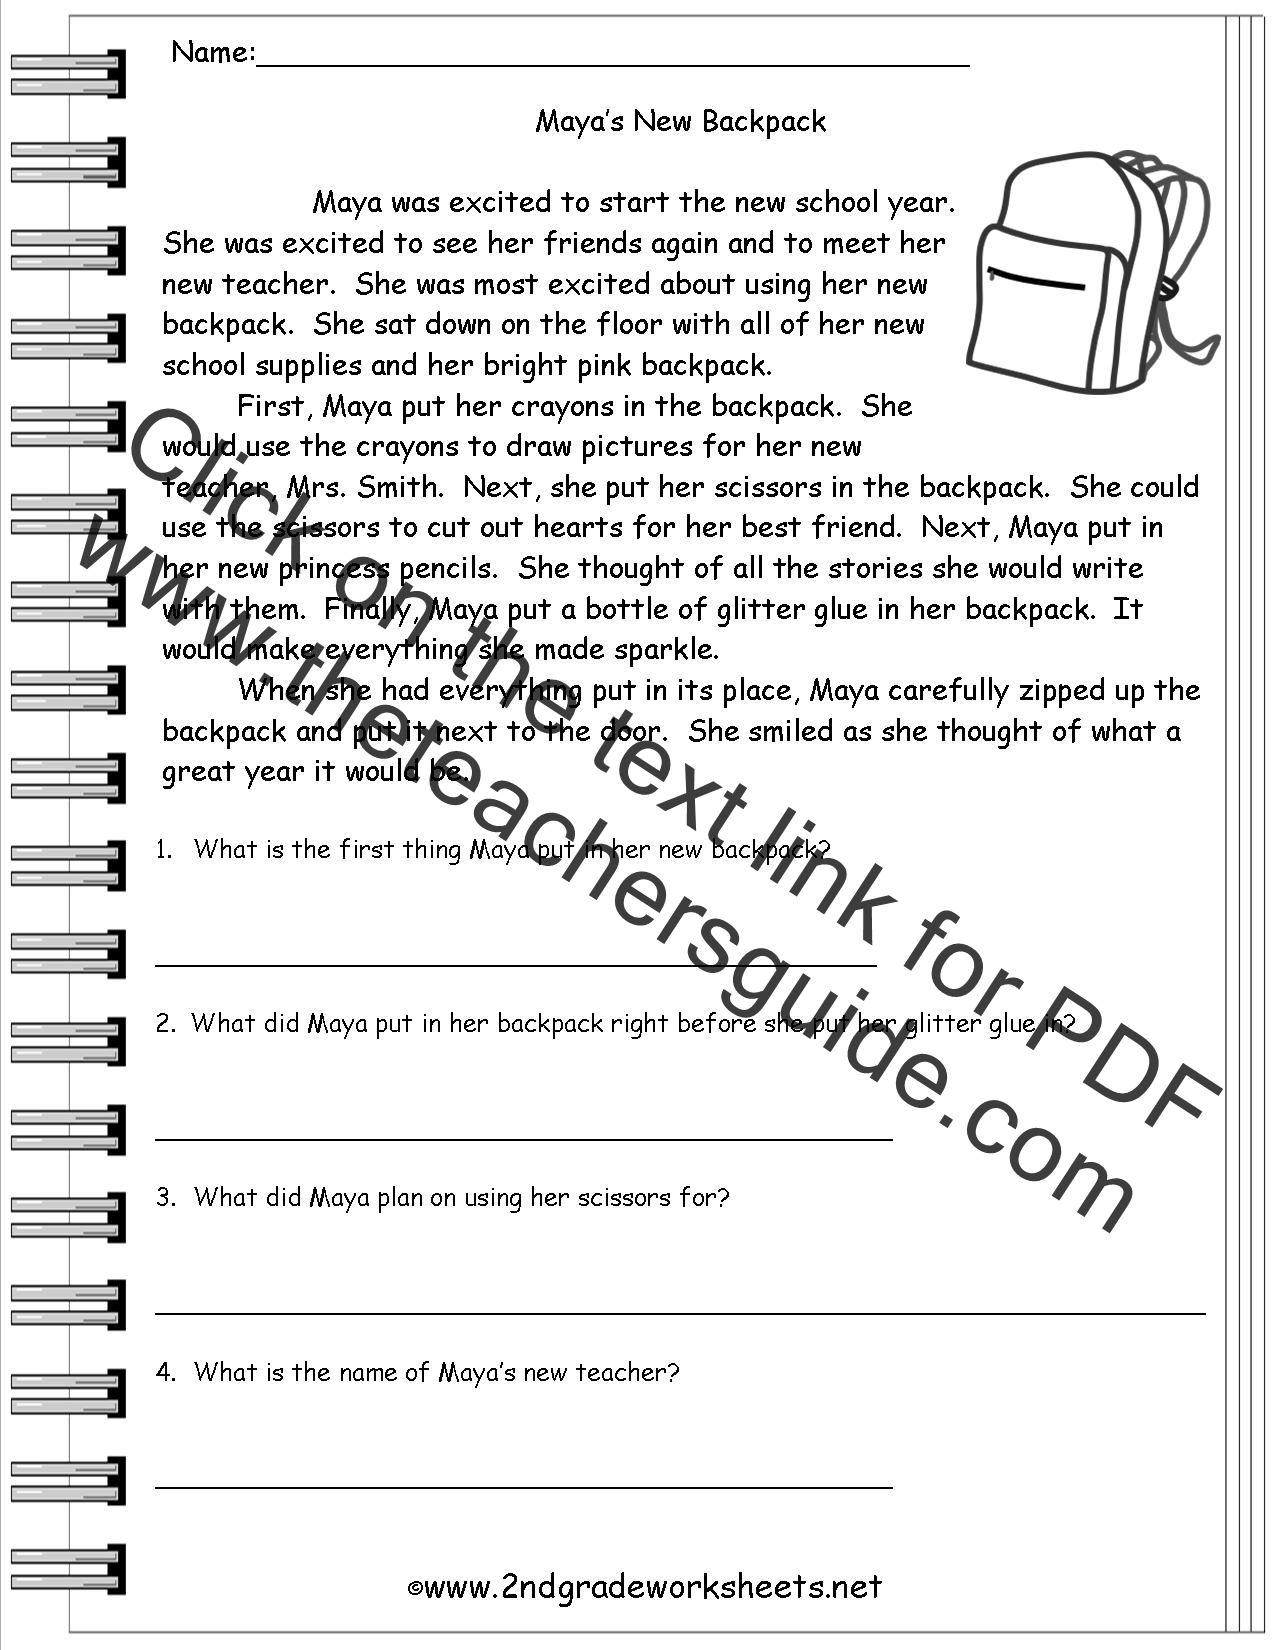 Worksheet Reading Passages 3rd Grade reading worksheeets literature worksheets